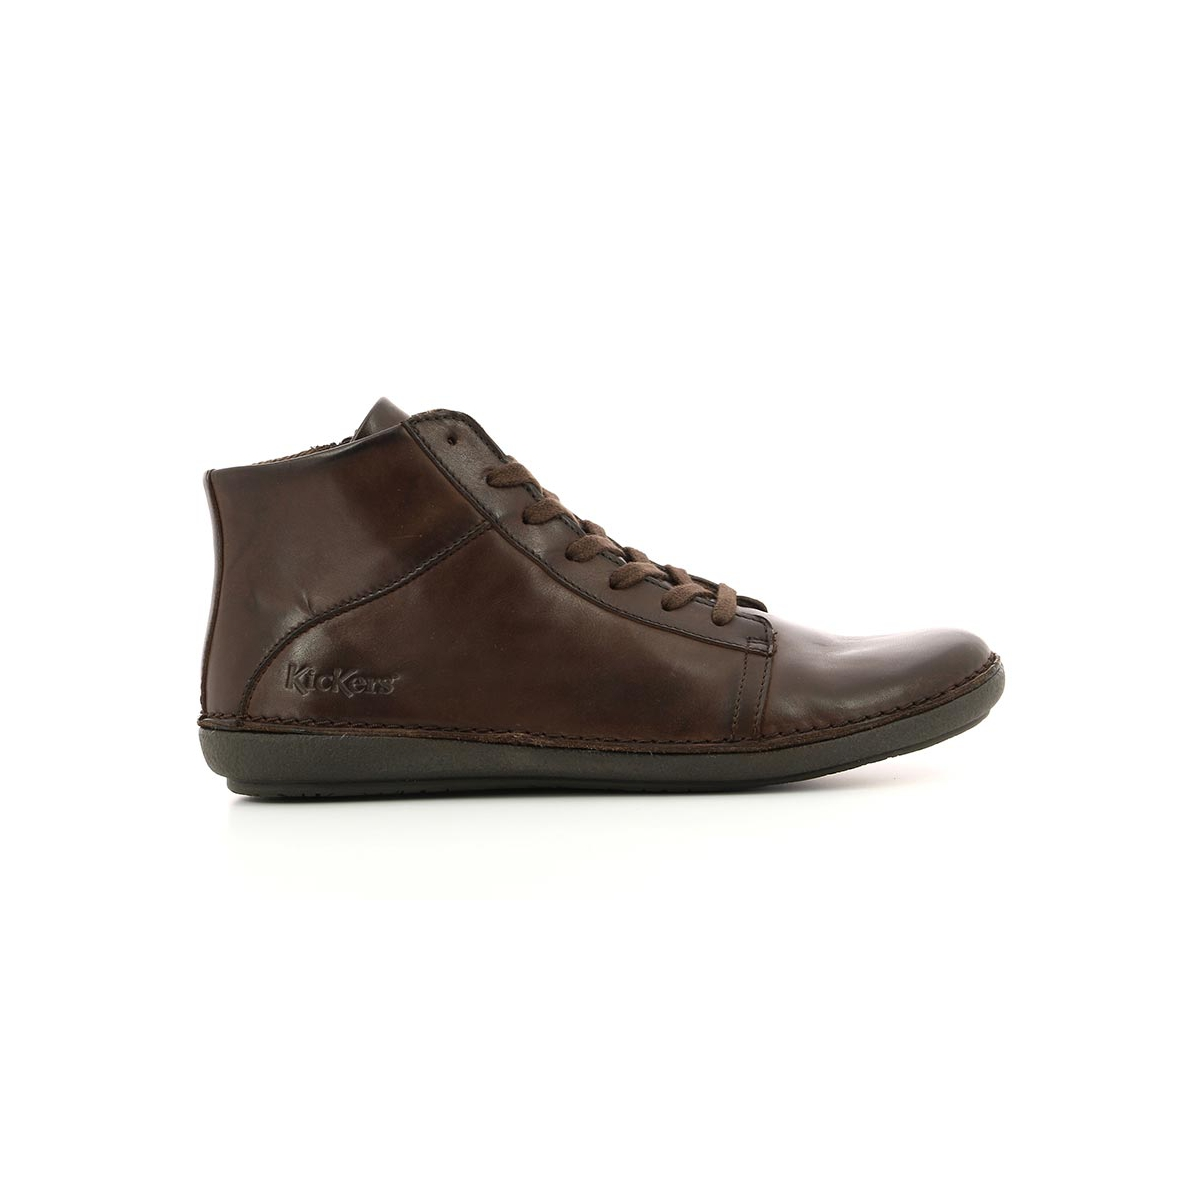 Chaussures Chaussures Marron Marron Fowno Chaussures Fowno Kickers Femme Femme Kickers rBoexCQdW